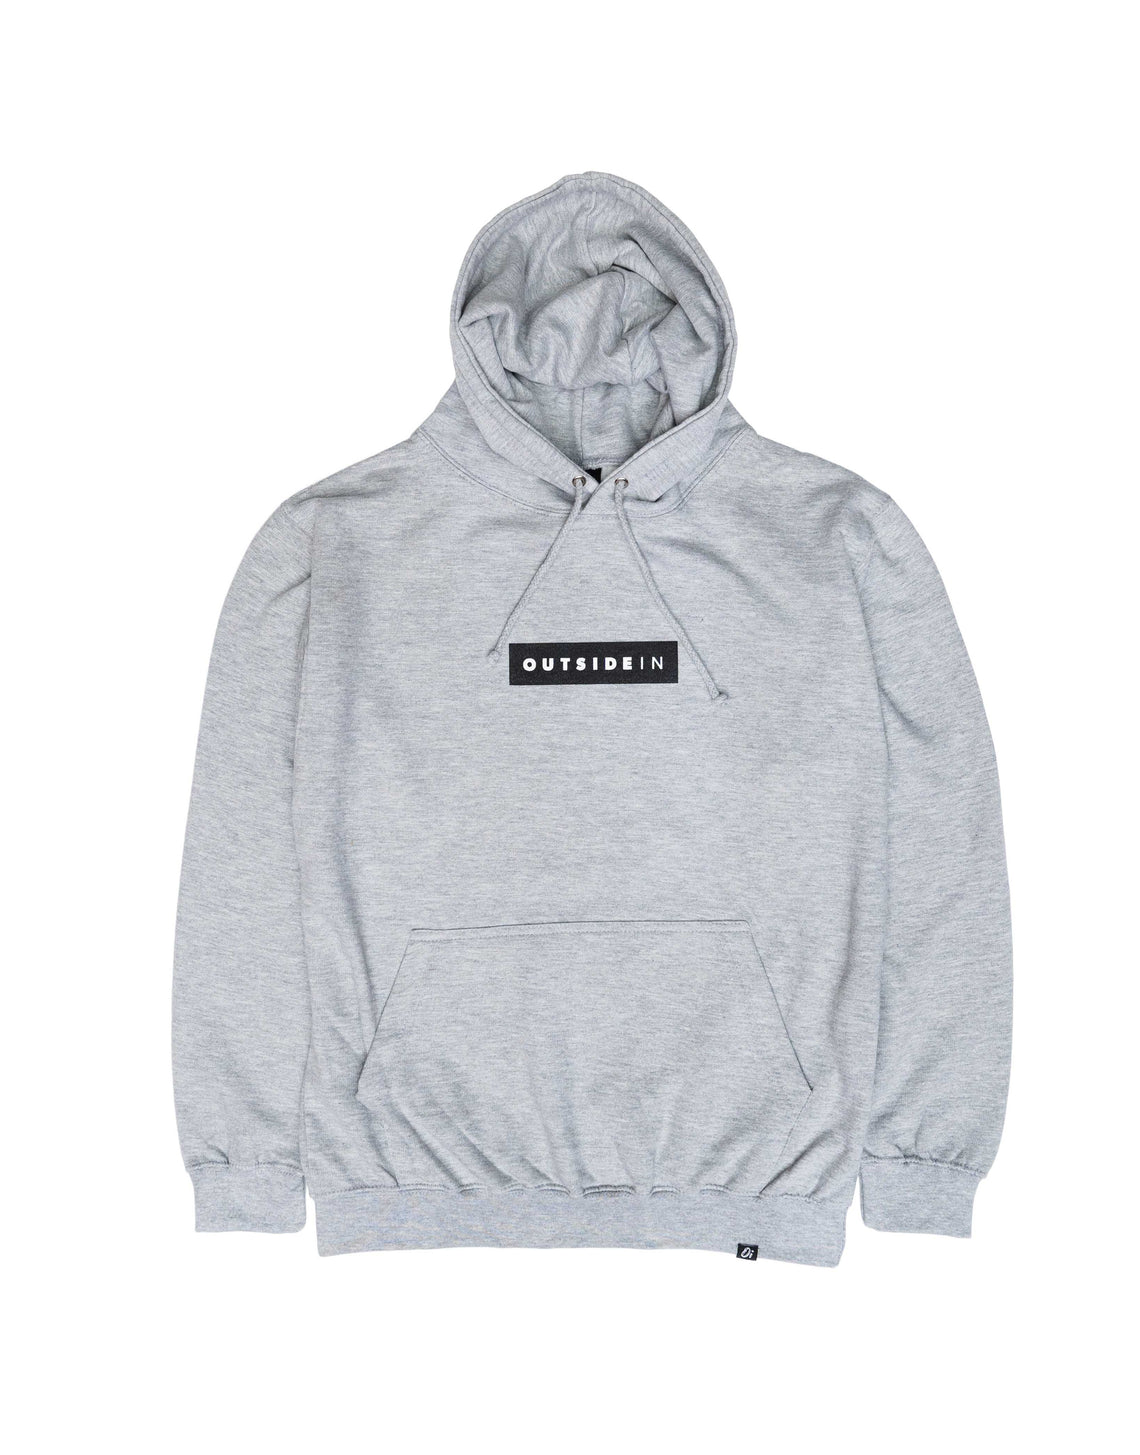 Essential Grey Block Hoodie - OutsideIn